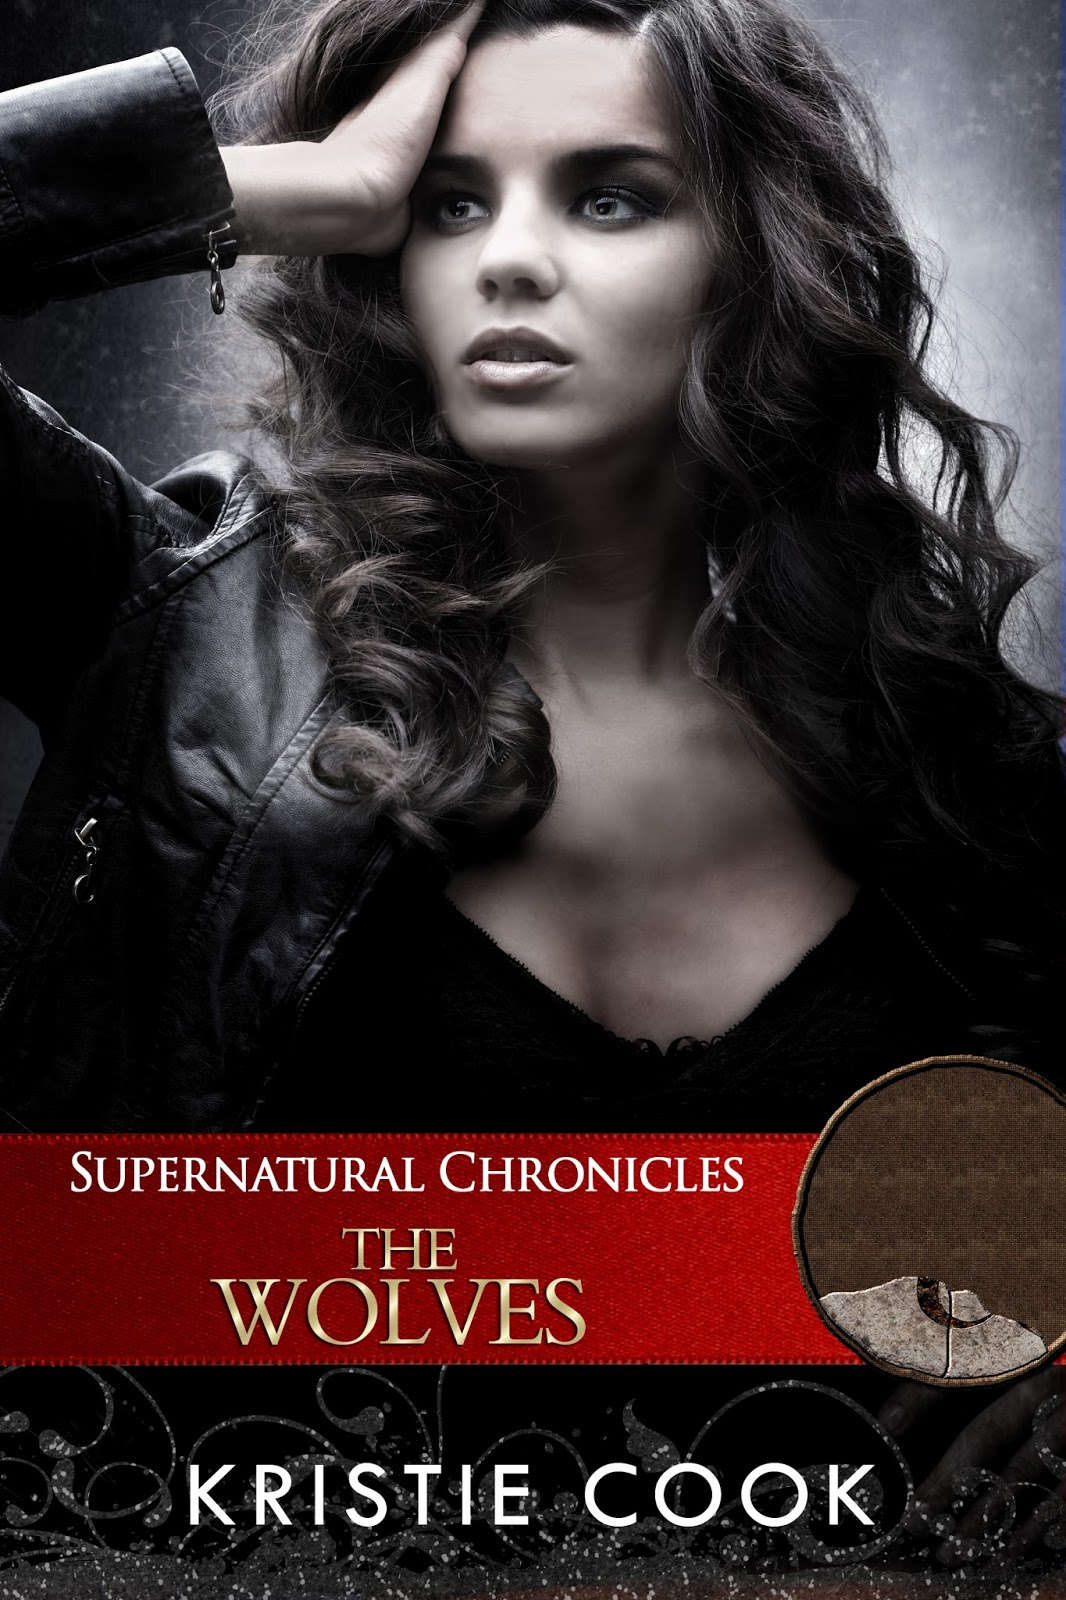 For far too long, Sundae Grayson has lived under the tight control of her father and the wolf pack he leads. At twenty-two and with college degree in hand, she's ready to embark on a journey of her own. But when her father is attacked and nearly killed, she finds a cryptic note in his pocket—a riddle she must solve to save him. Doing so means delaying the life she desires, but her father is worth it. Not to mention that if he dies, she becomes alpha, and she's so not ready for that. Thank the Angels for Trevor, leader of his own pack and her lifelong crush, who volunteers to help her.        The riddle sends them on the hunt of their lives. After all, they must solve the mystery, find the relic they need, and deliver it on time to save not only their packs, but all of the Amadis, who serve as the Angels' army on Earth. If they fail, the Demons will win over the world. But what must be sacrificed for the sake of the greater good?        This novella takes place in the internationally bestselling Soul Savers series by Kristie Cook, so be prepared to see some favorite characters. The story's timeline falls between Promise, Book 1, and Purpose, Book 2.